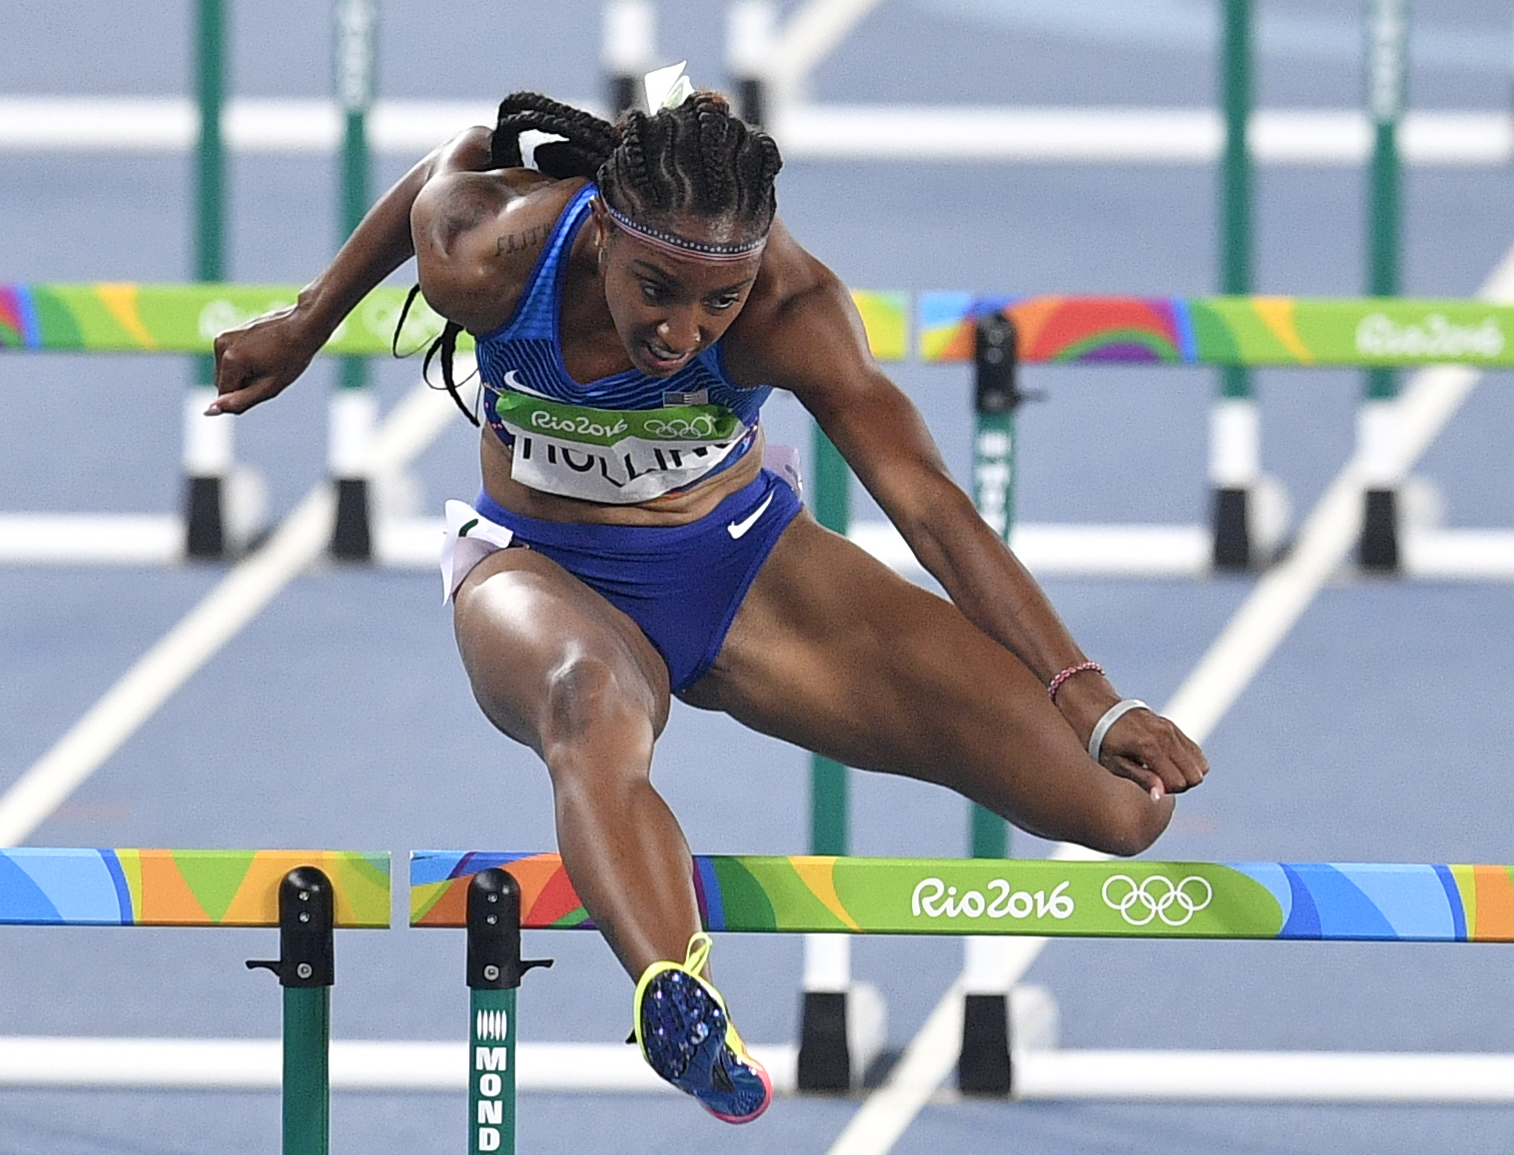 Olympic hurdles champion banned for whereabouts mix-up ...